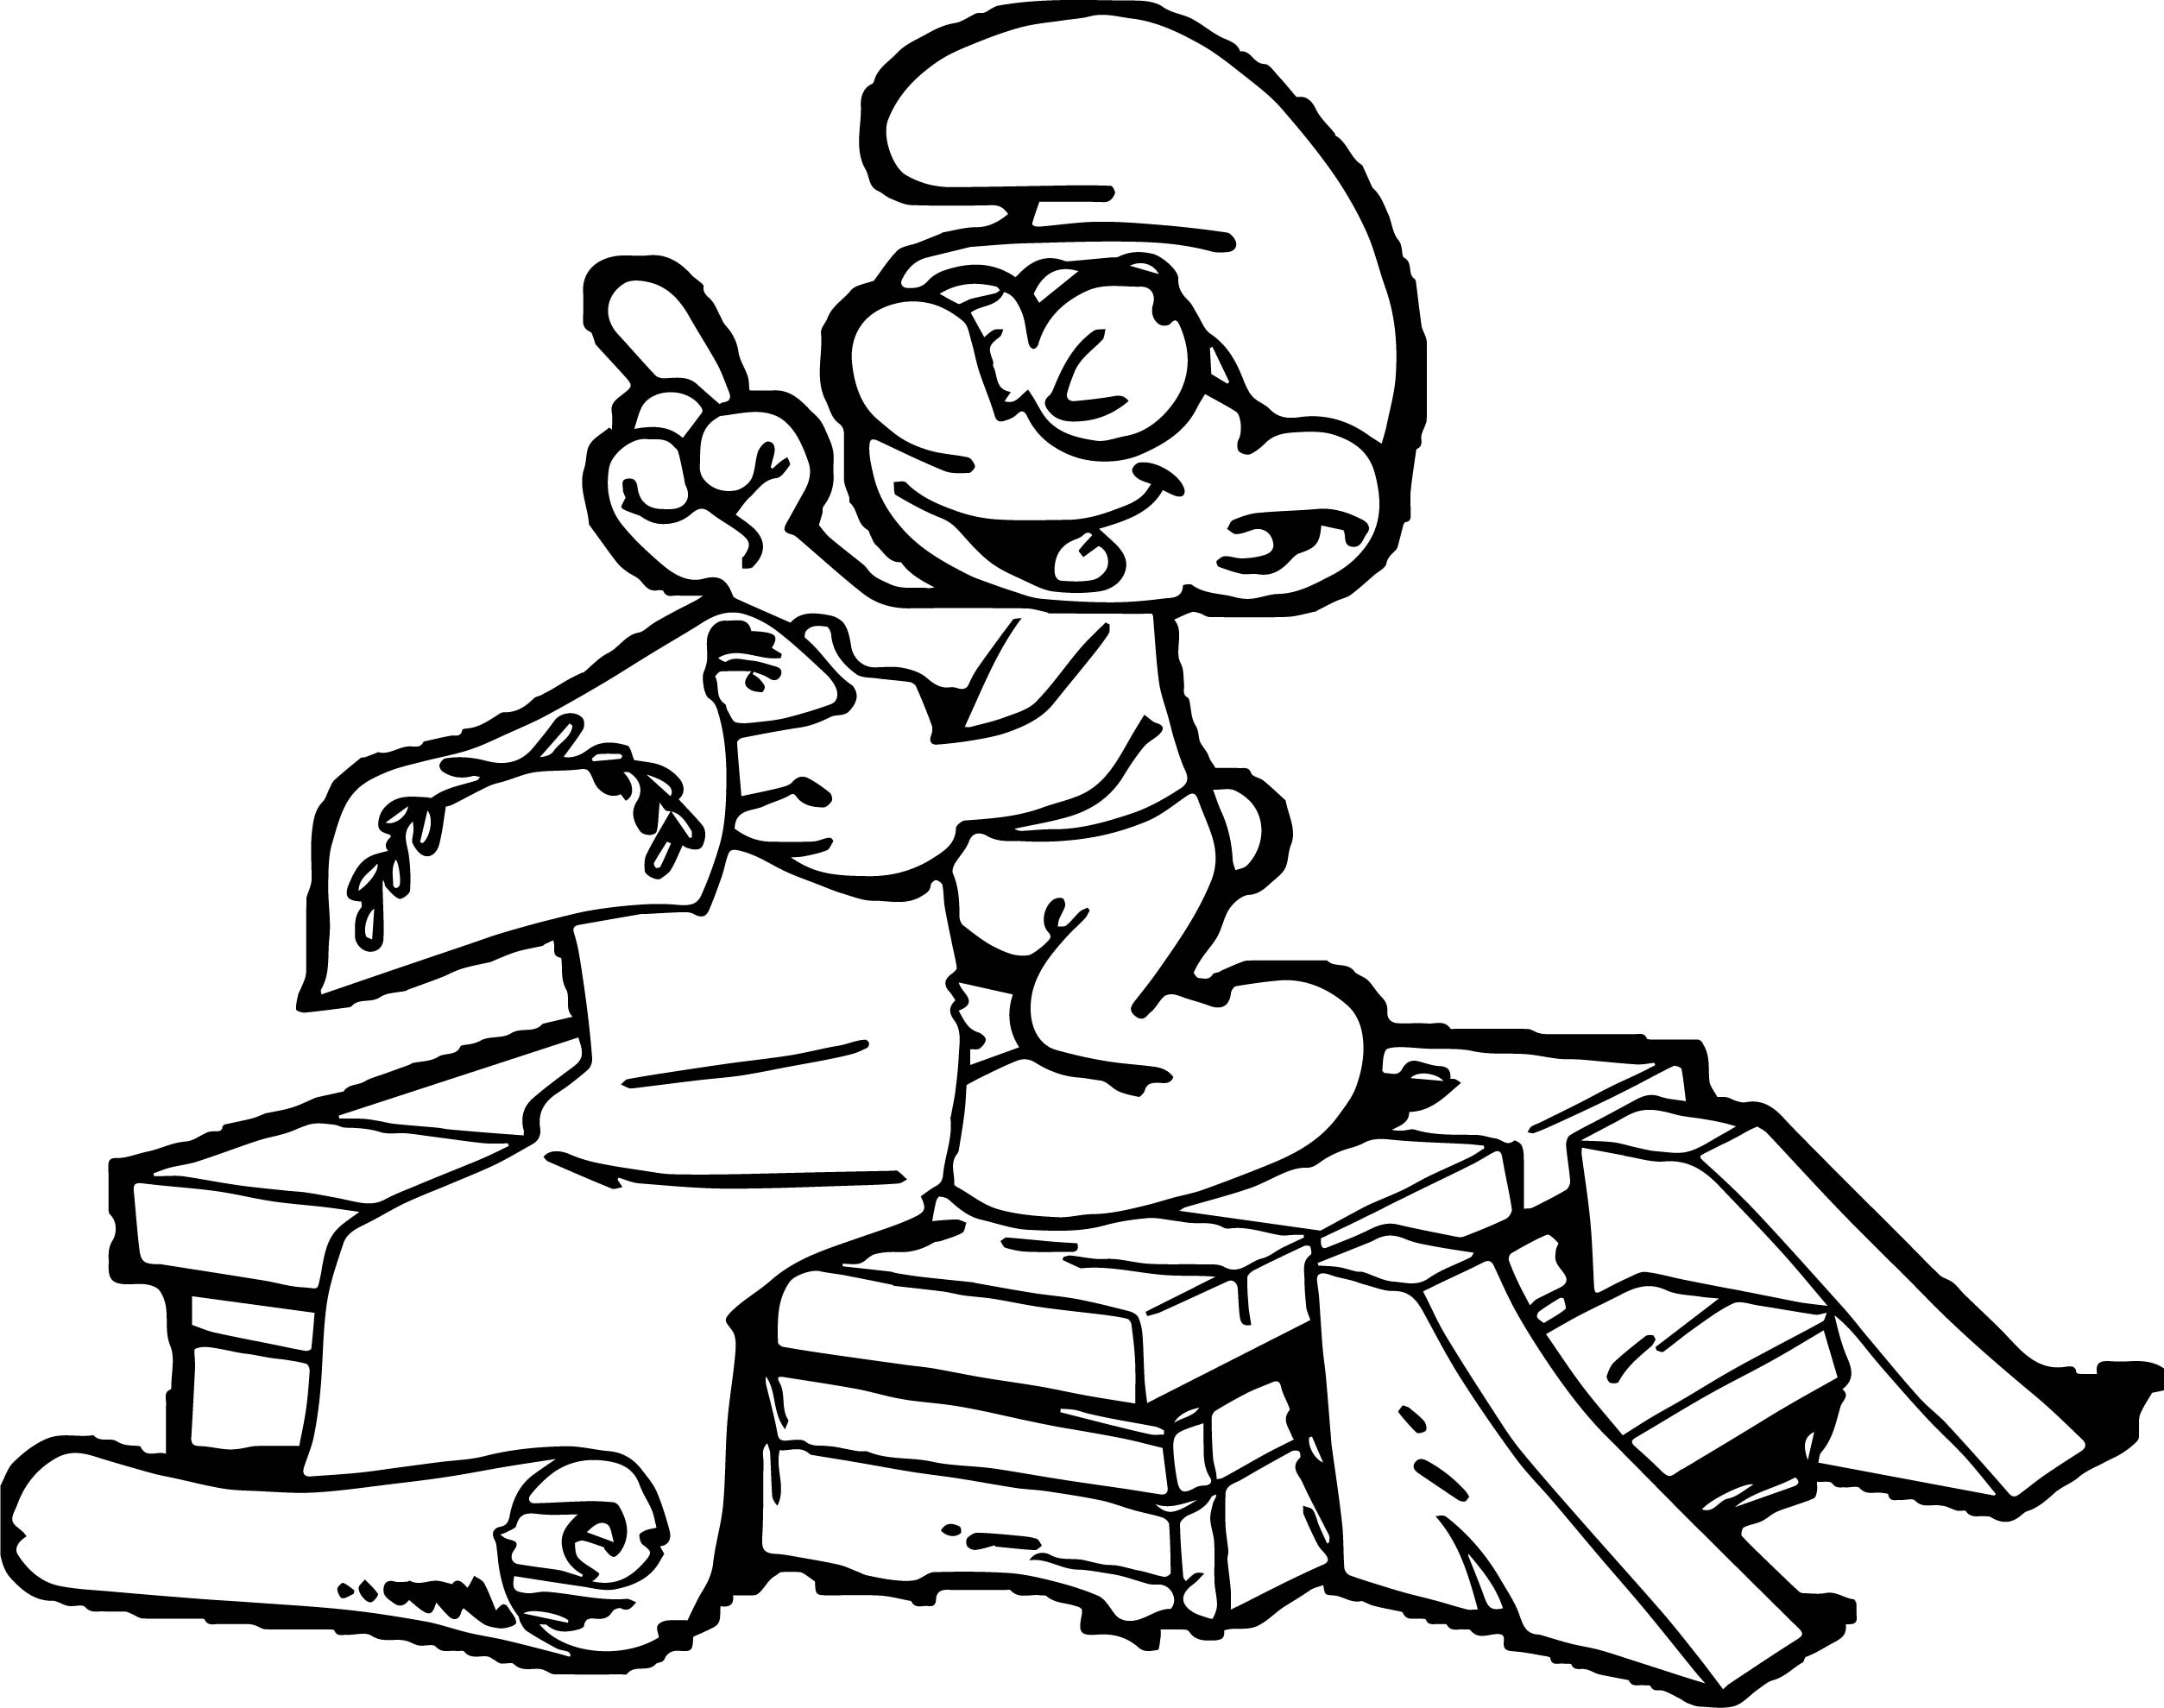 Smurf Brainy Coloring Page